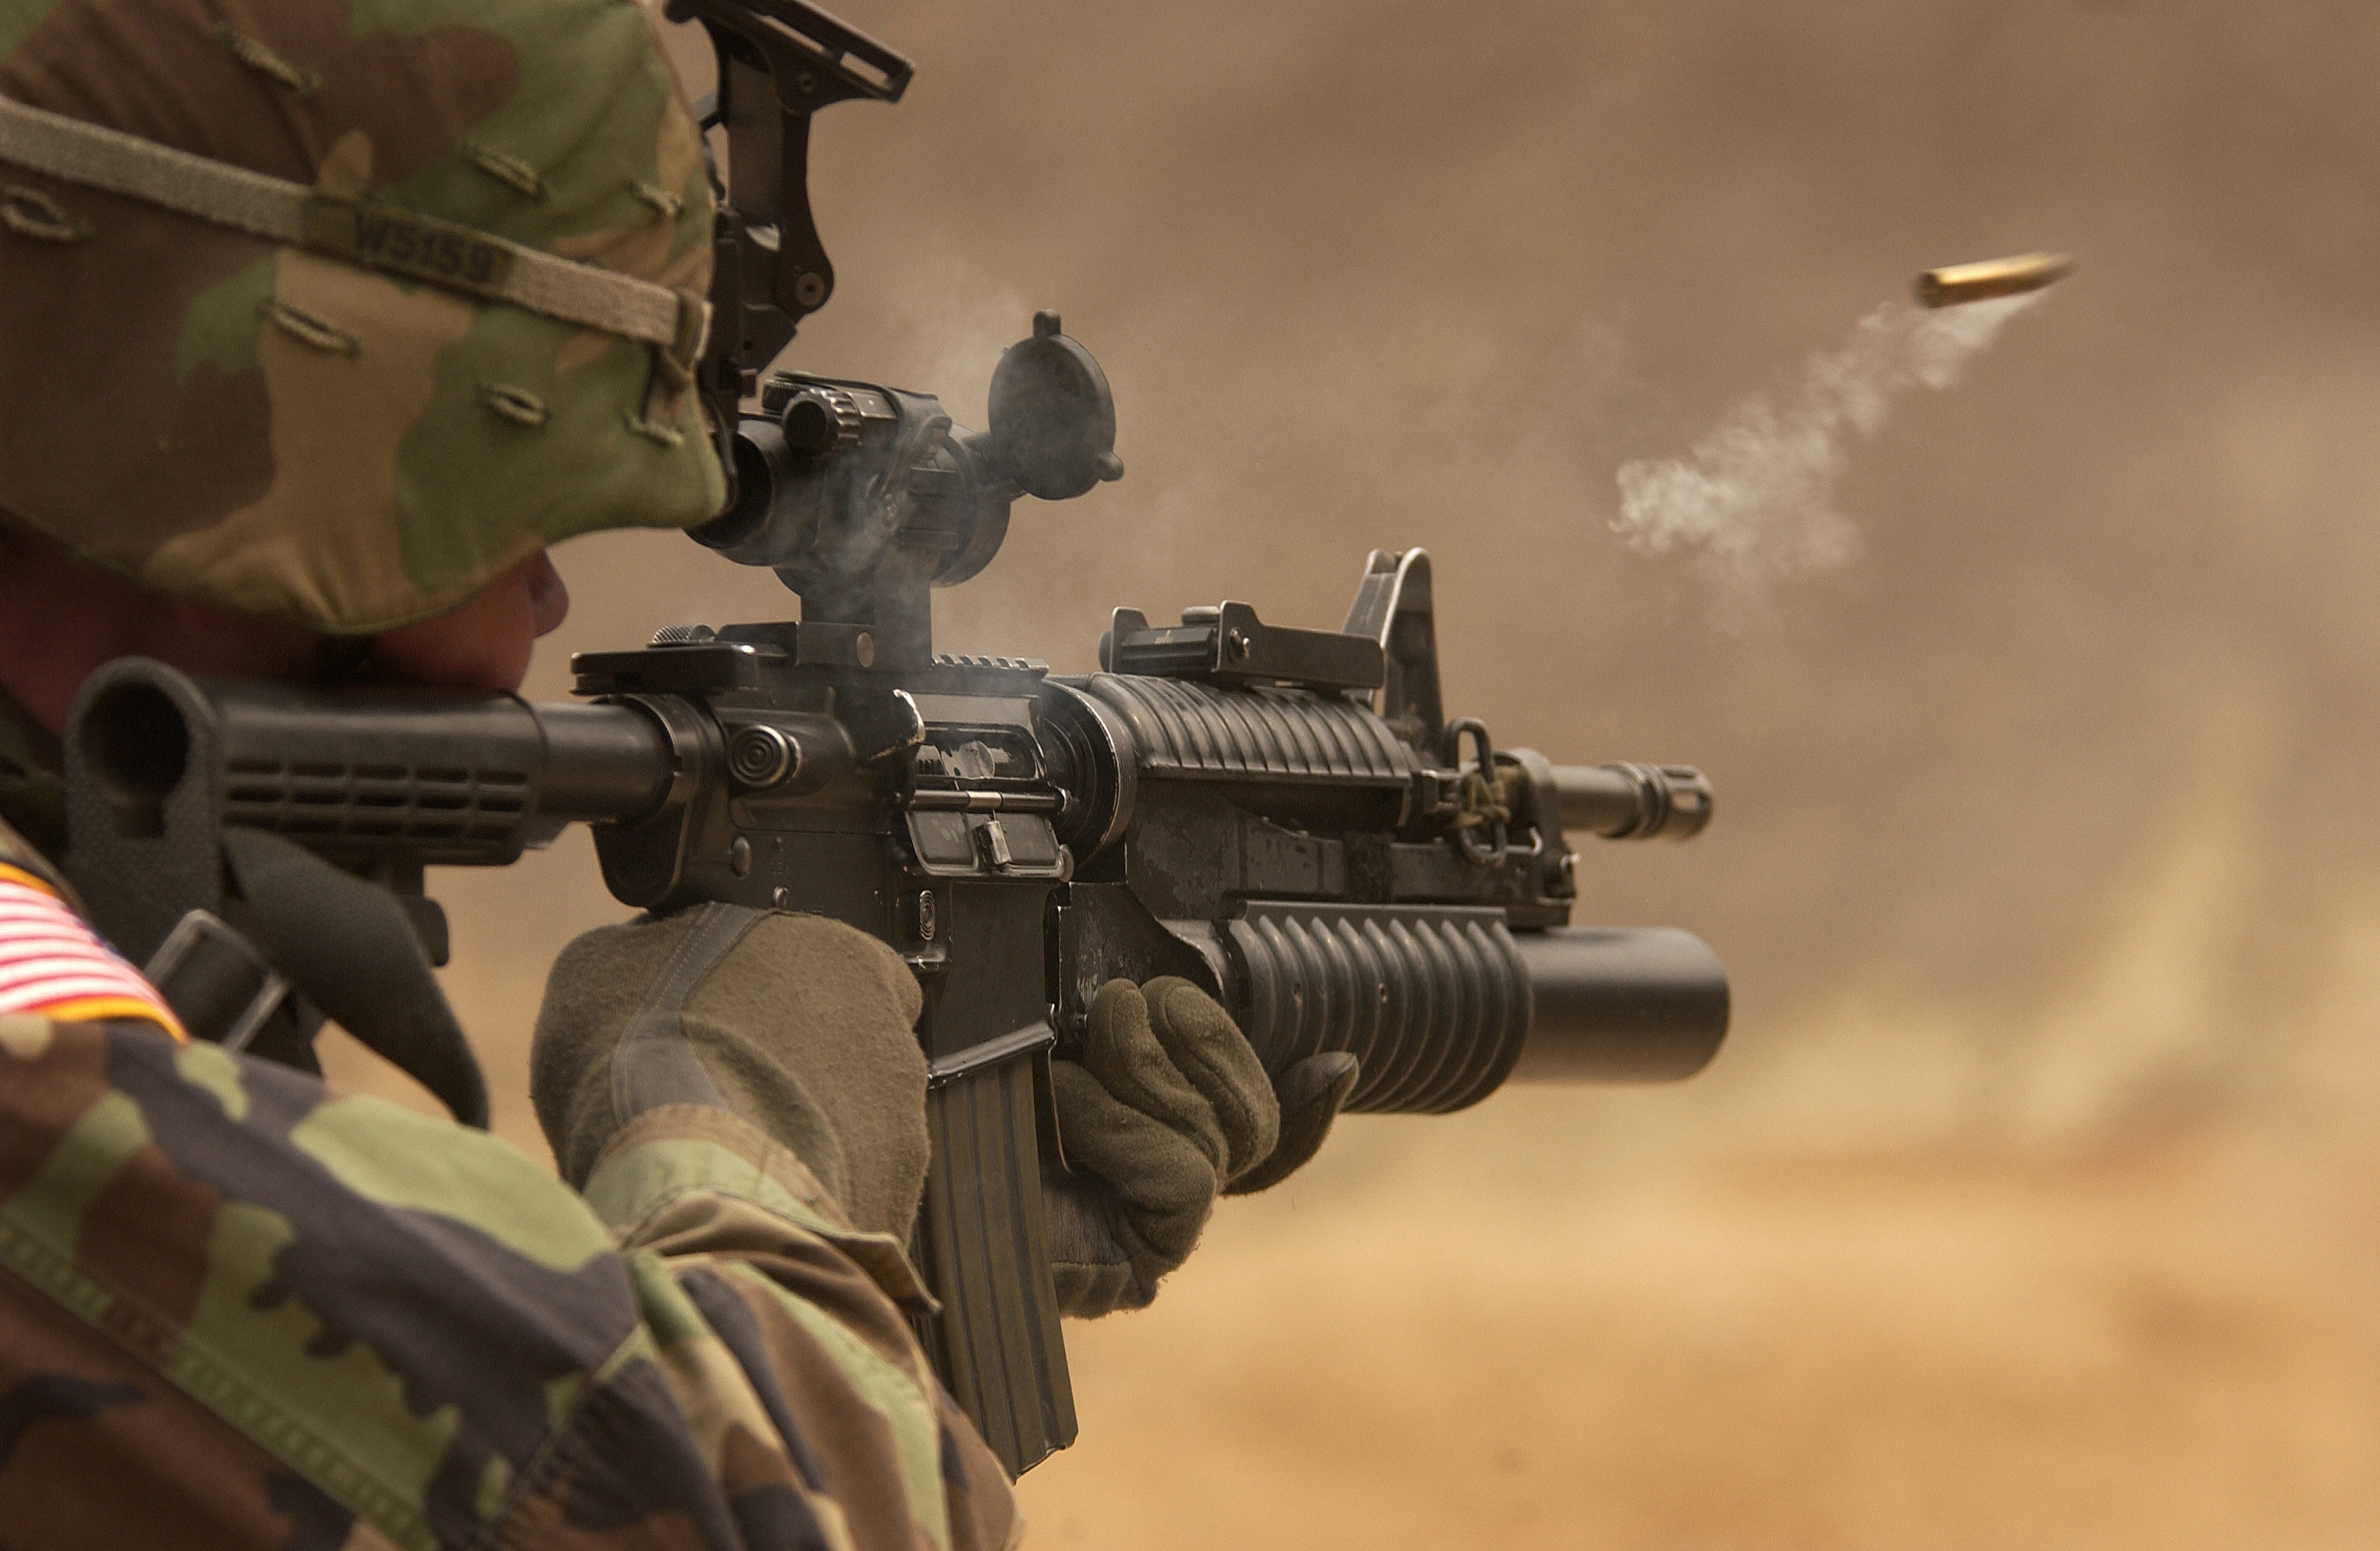 3008x1960 Awesome Military Images Collection: Military Wallpapers ...